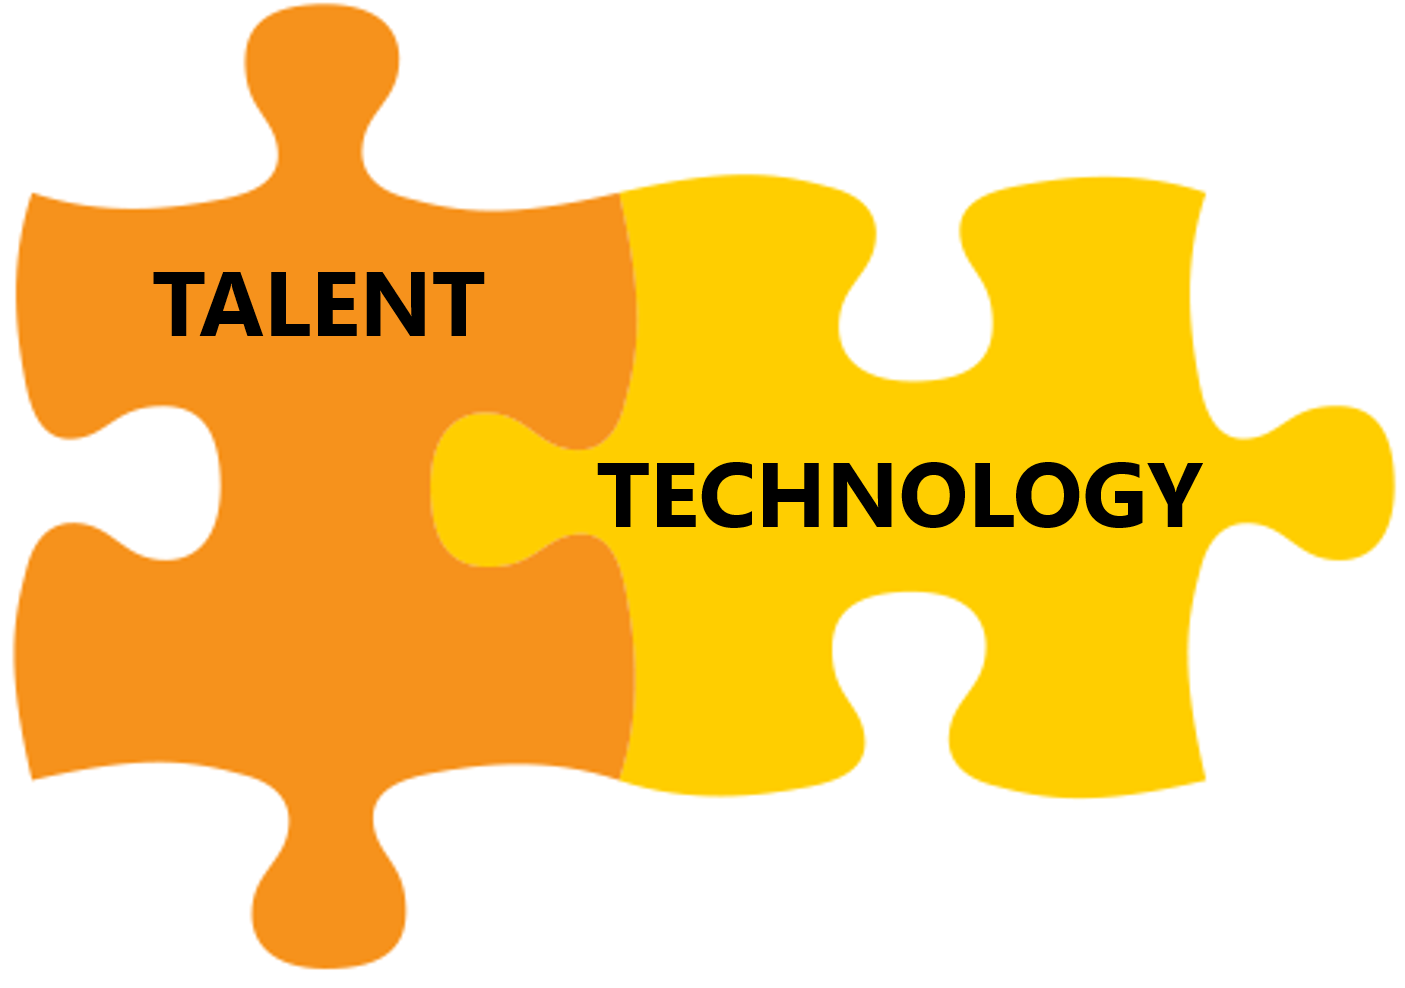 Talent Management: Use of Technology and Analytics